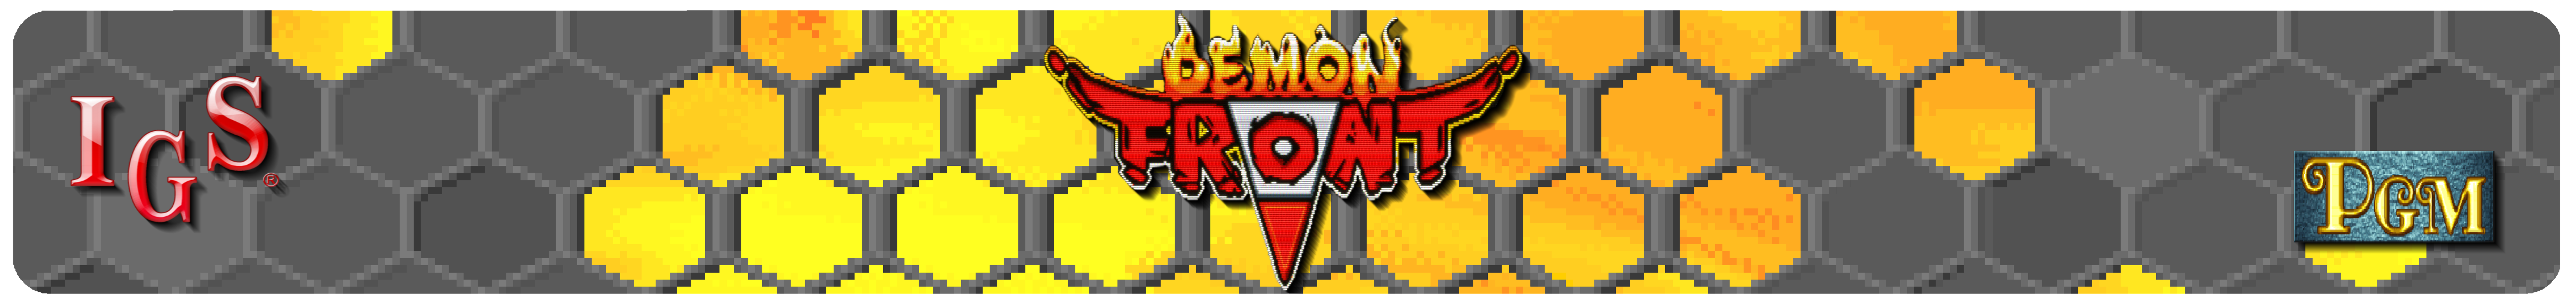 Demon_Front_Grids_Correct_AR.png